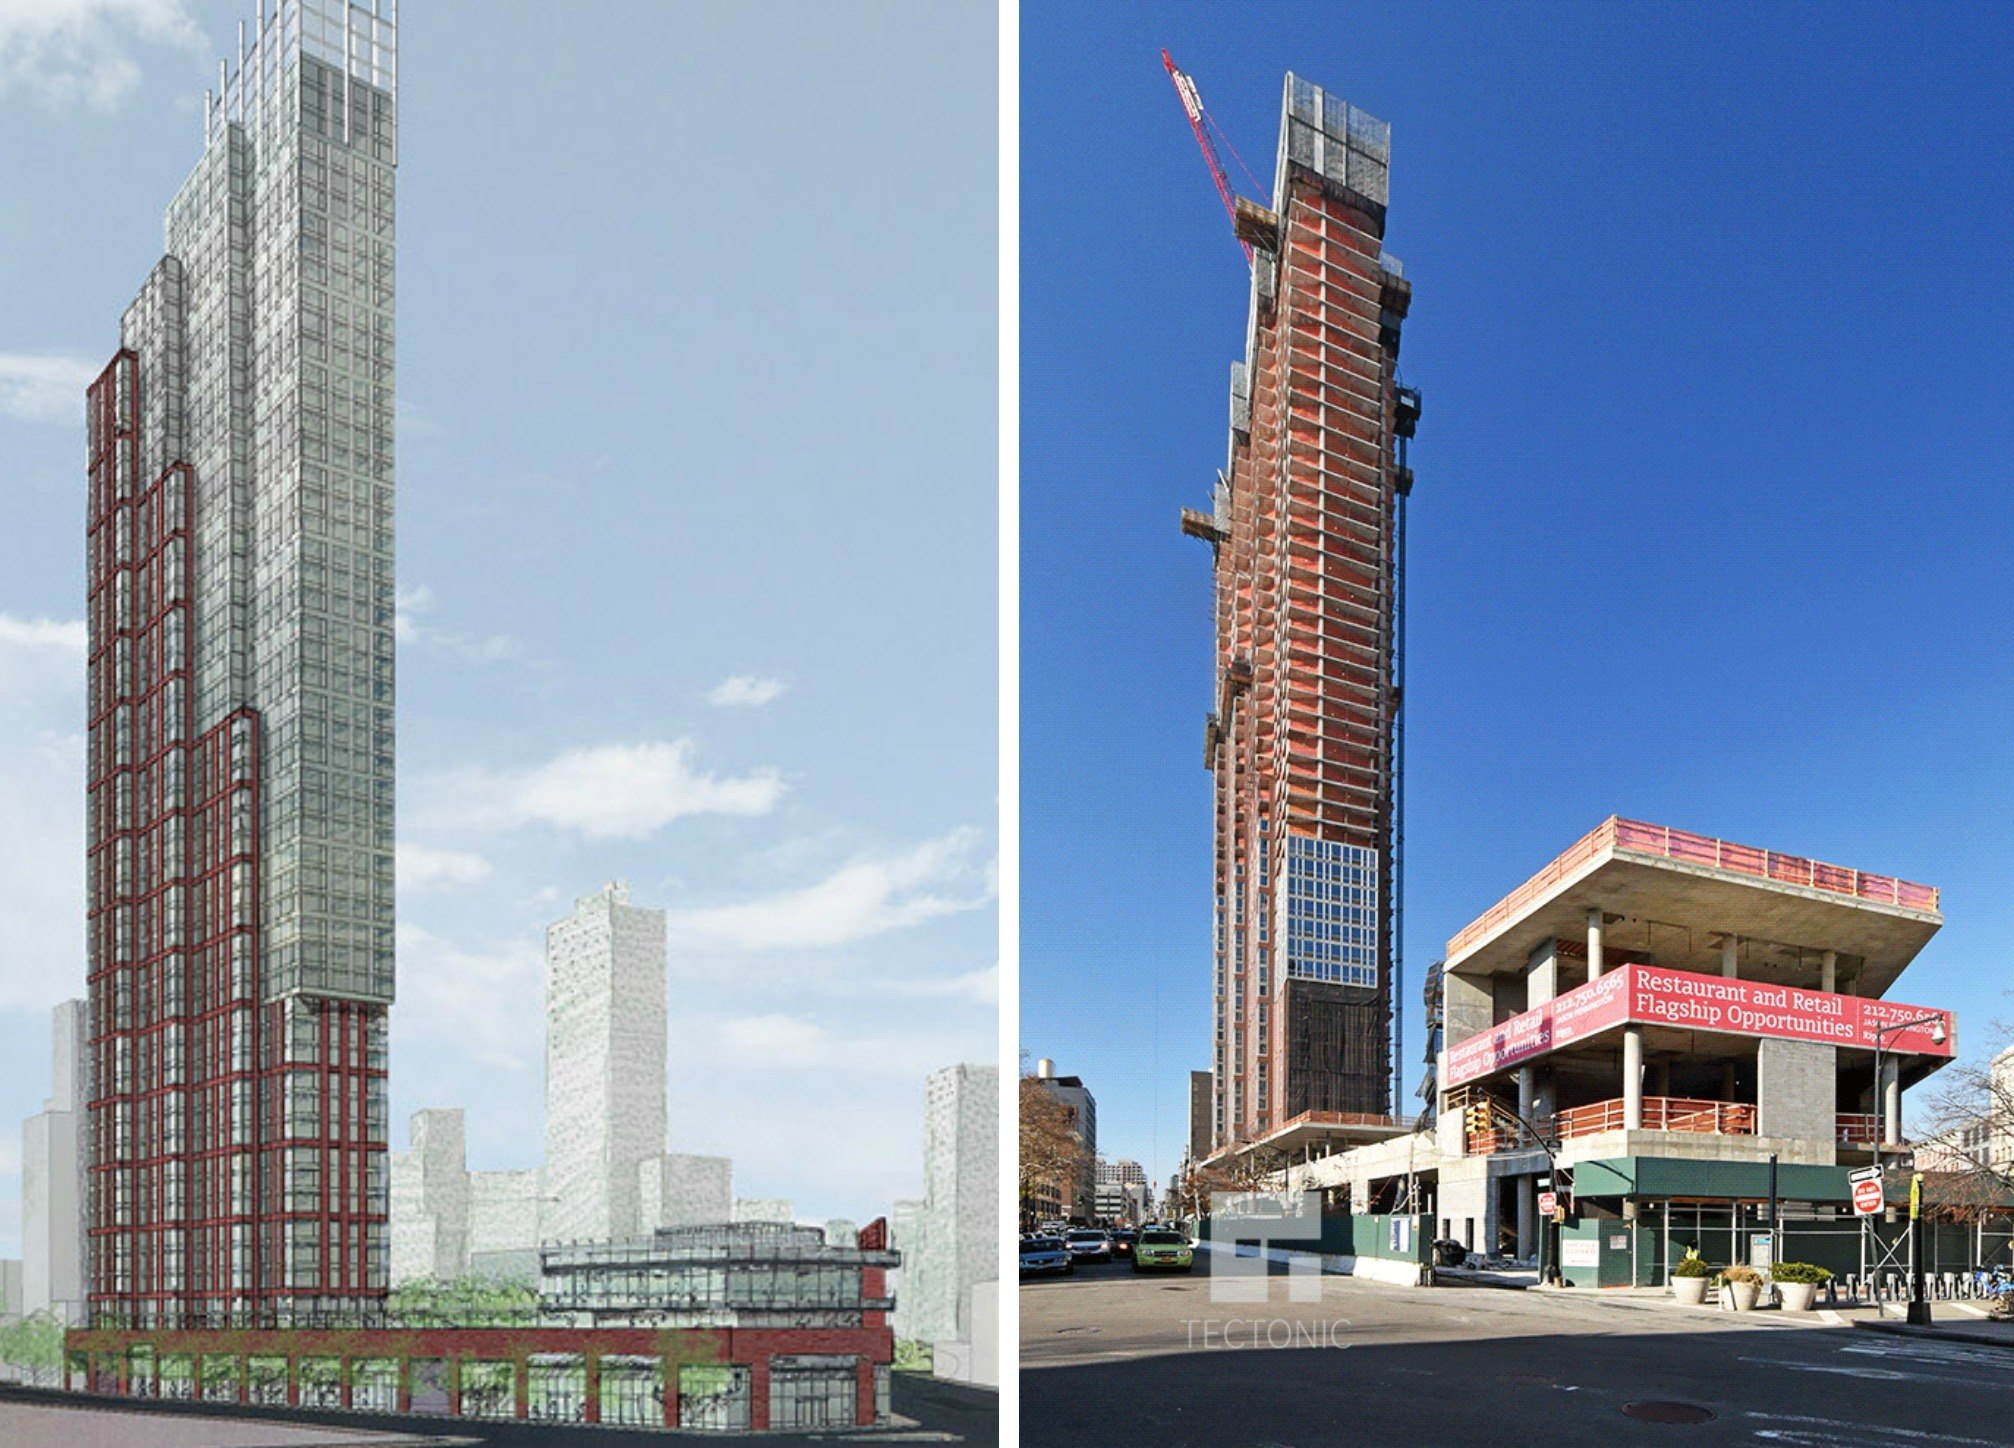 Live In Brooklynu0027s Tallest Tower For $833/month, Lottery Launching For 150  Units At 333 Schermerhorn